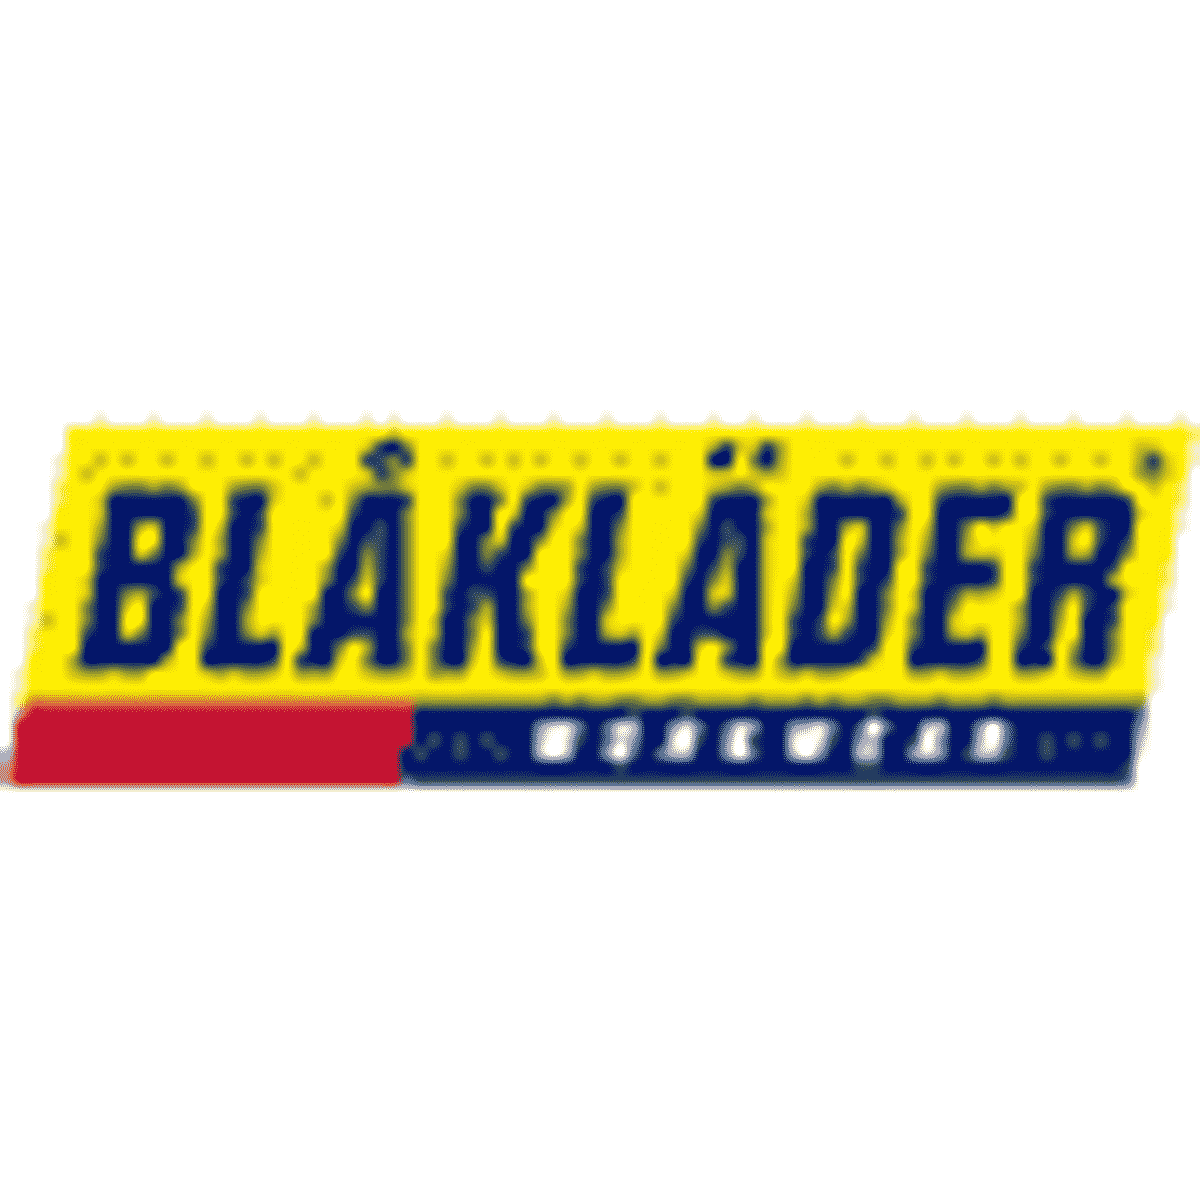 Men's Blaklader Shirts